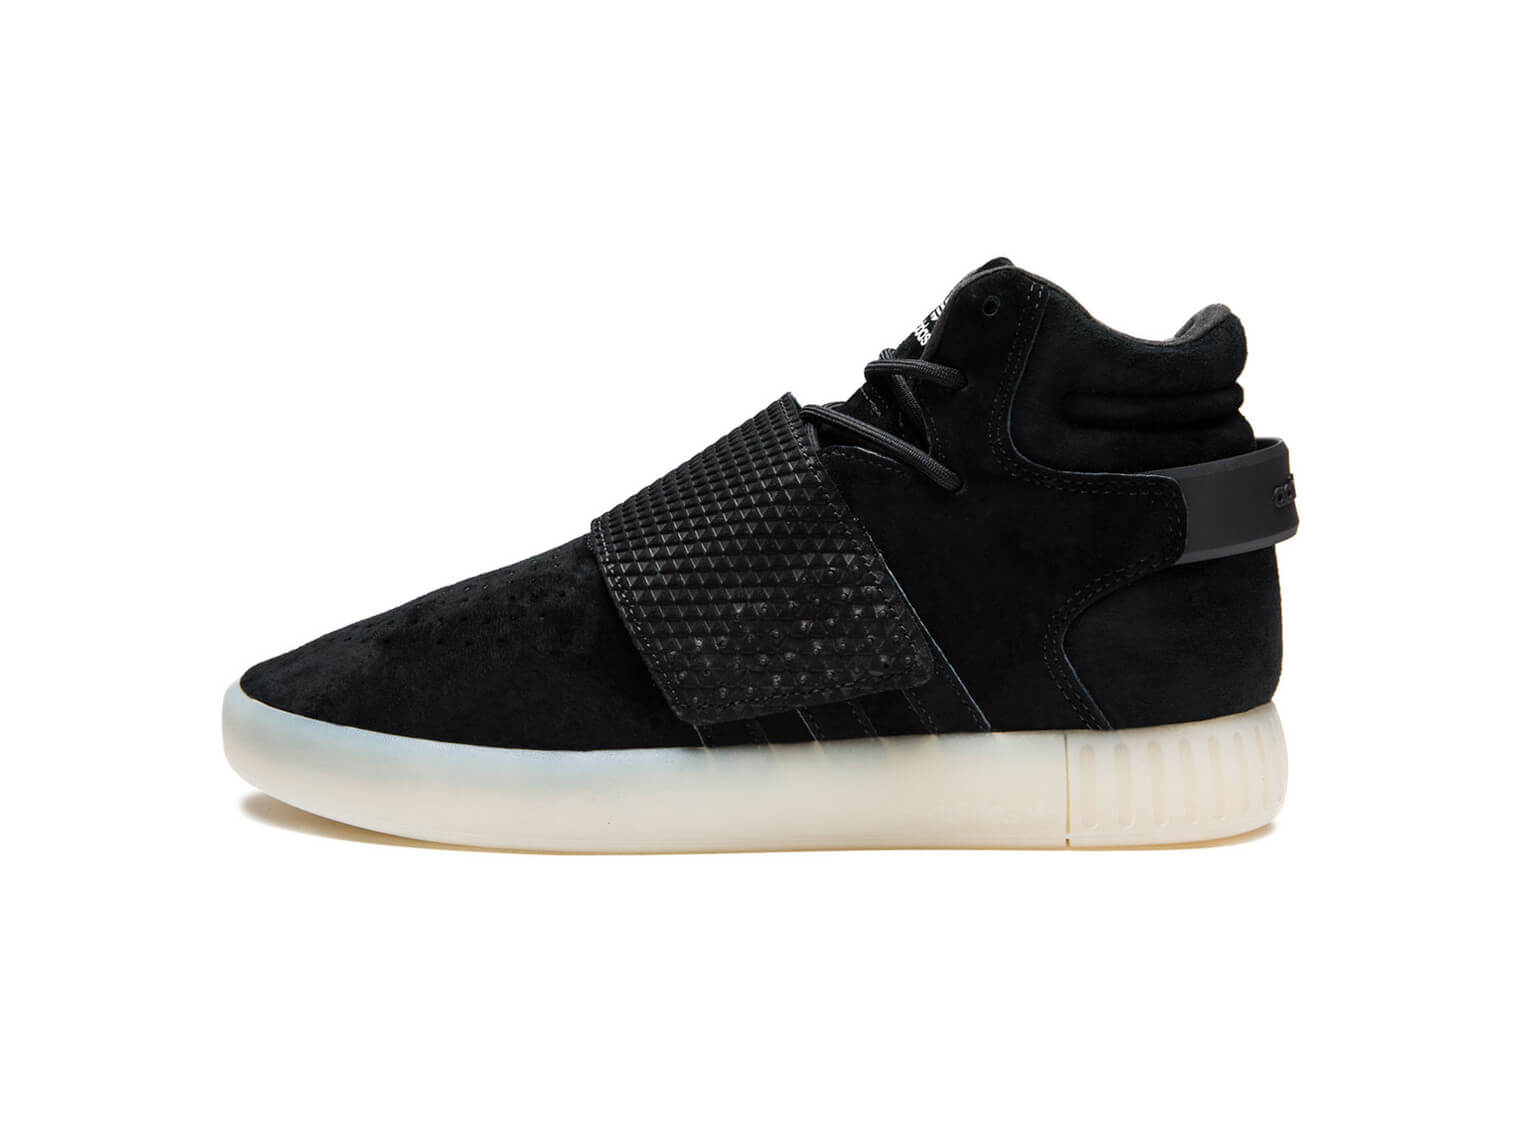 Adidas Tubular Invader Strap (Yeezy Inspired) Black Ice – ARCH-USA 1bfeb78dc